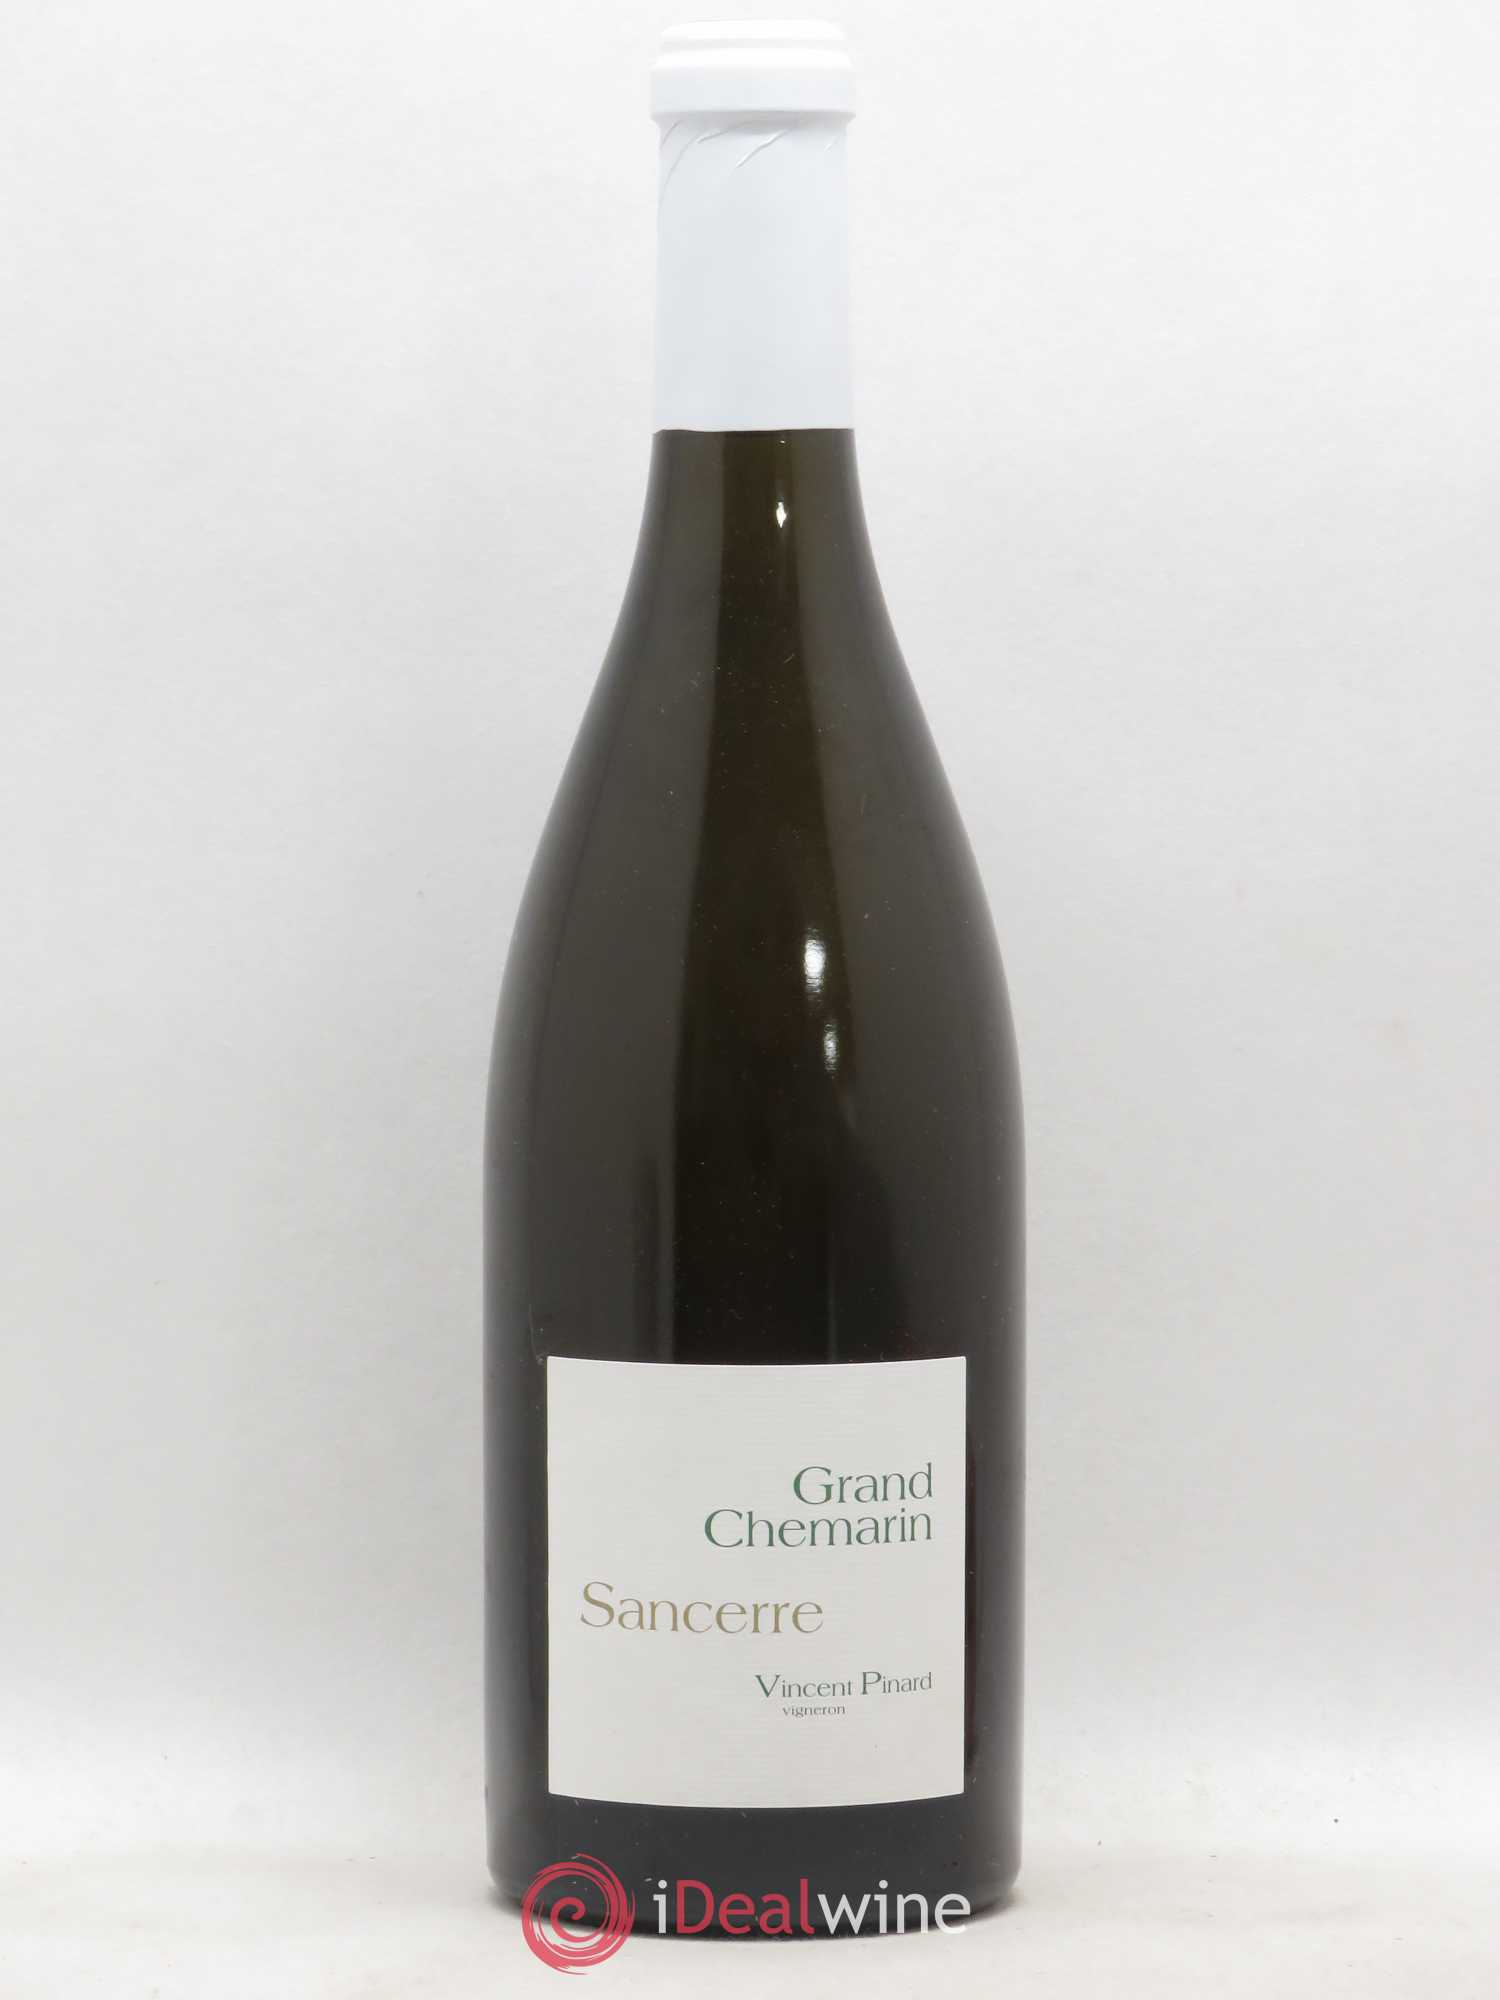 Sancerre Grand Chemarin Vincent Pinard (Domaine)  2015 - Lot of 1 Bottle